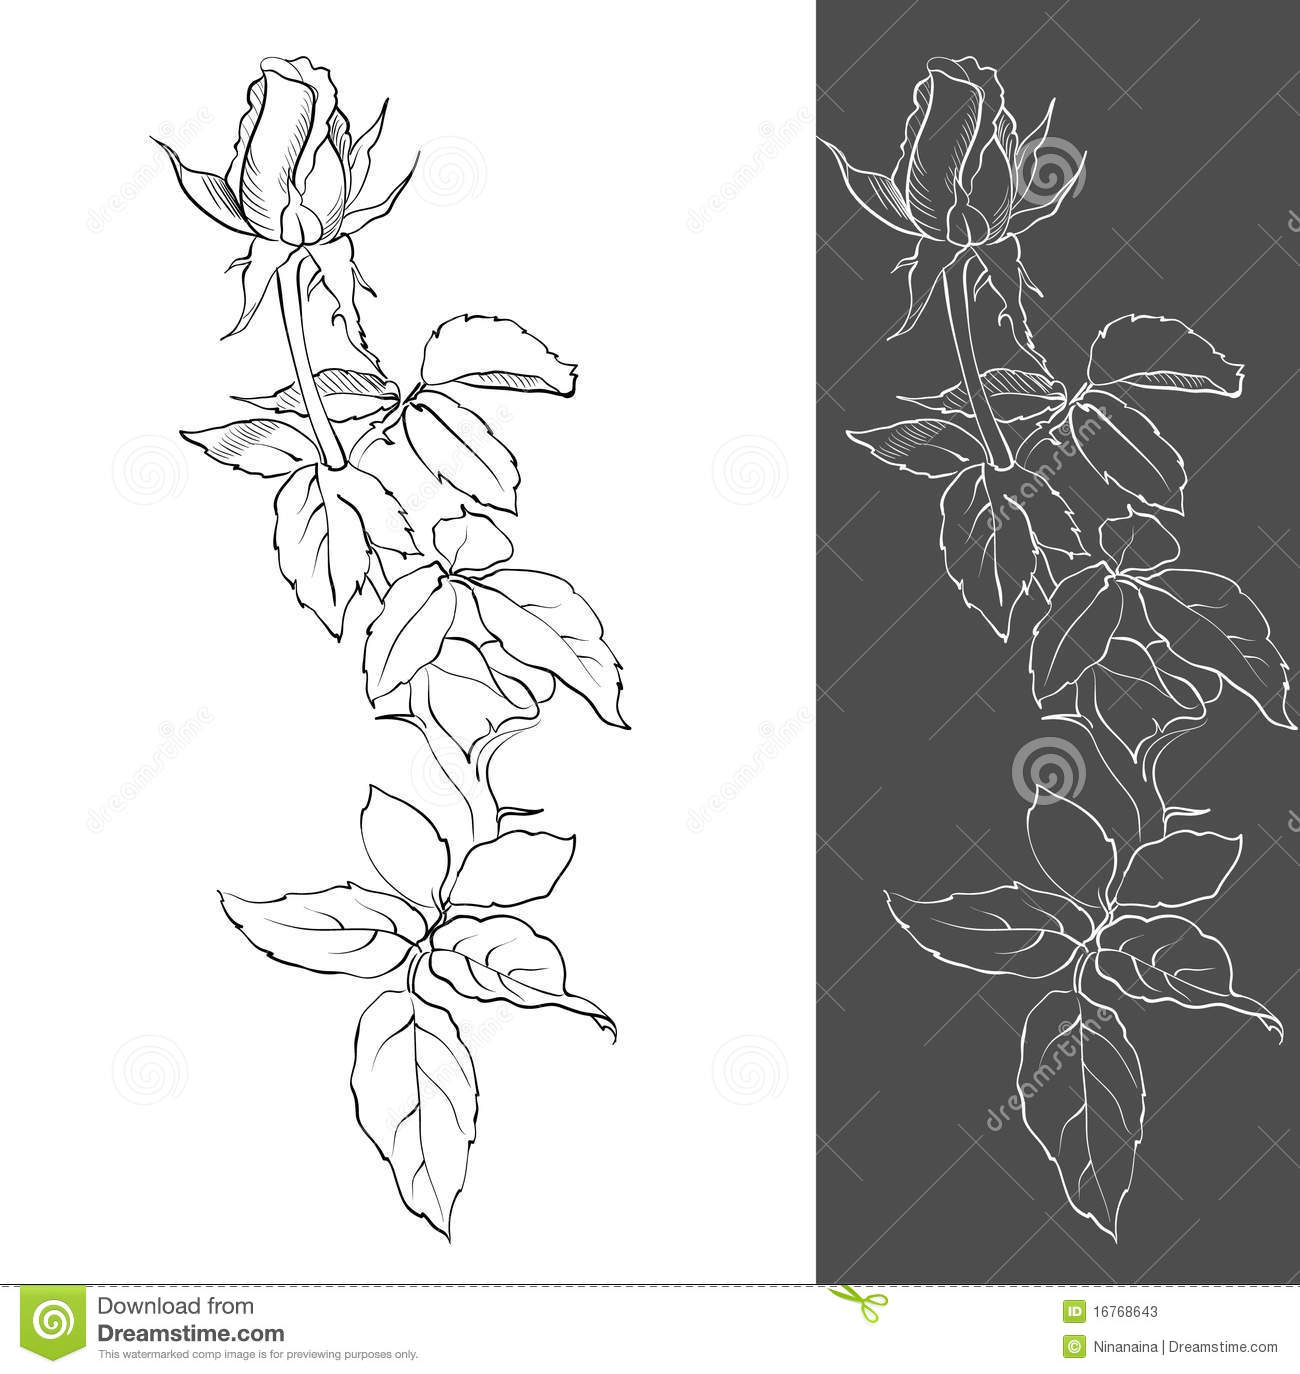 Drawing A Rosebud Stock Vector. Image Of Graphic, Leaf